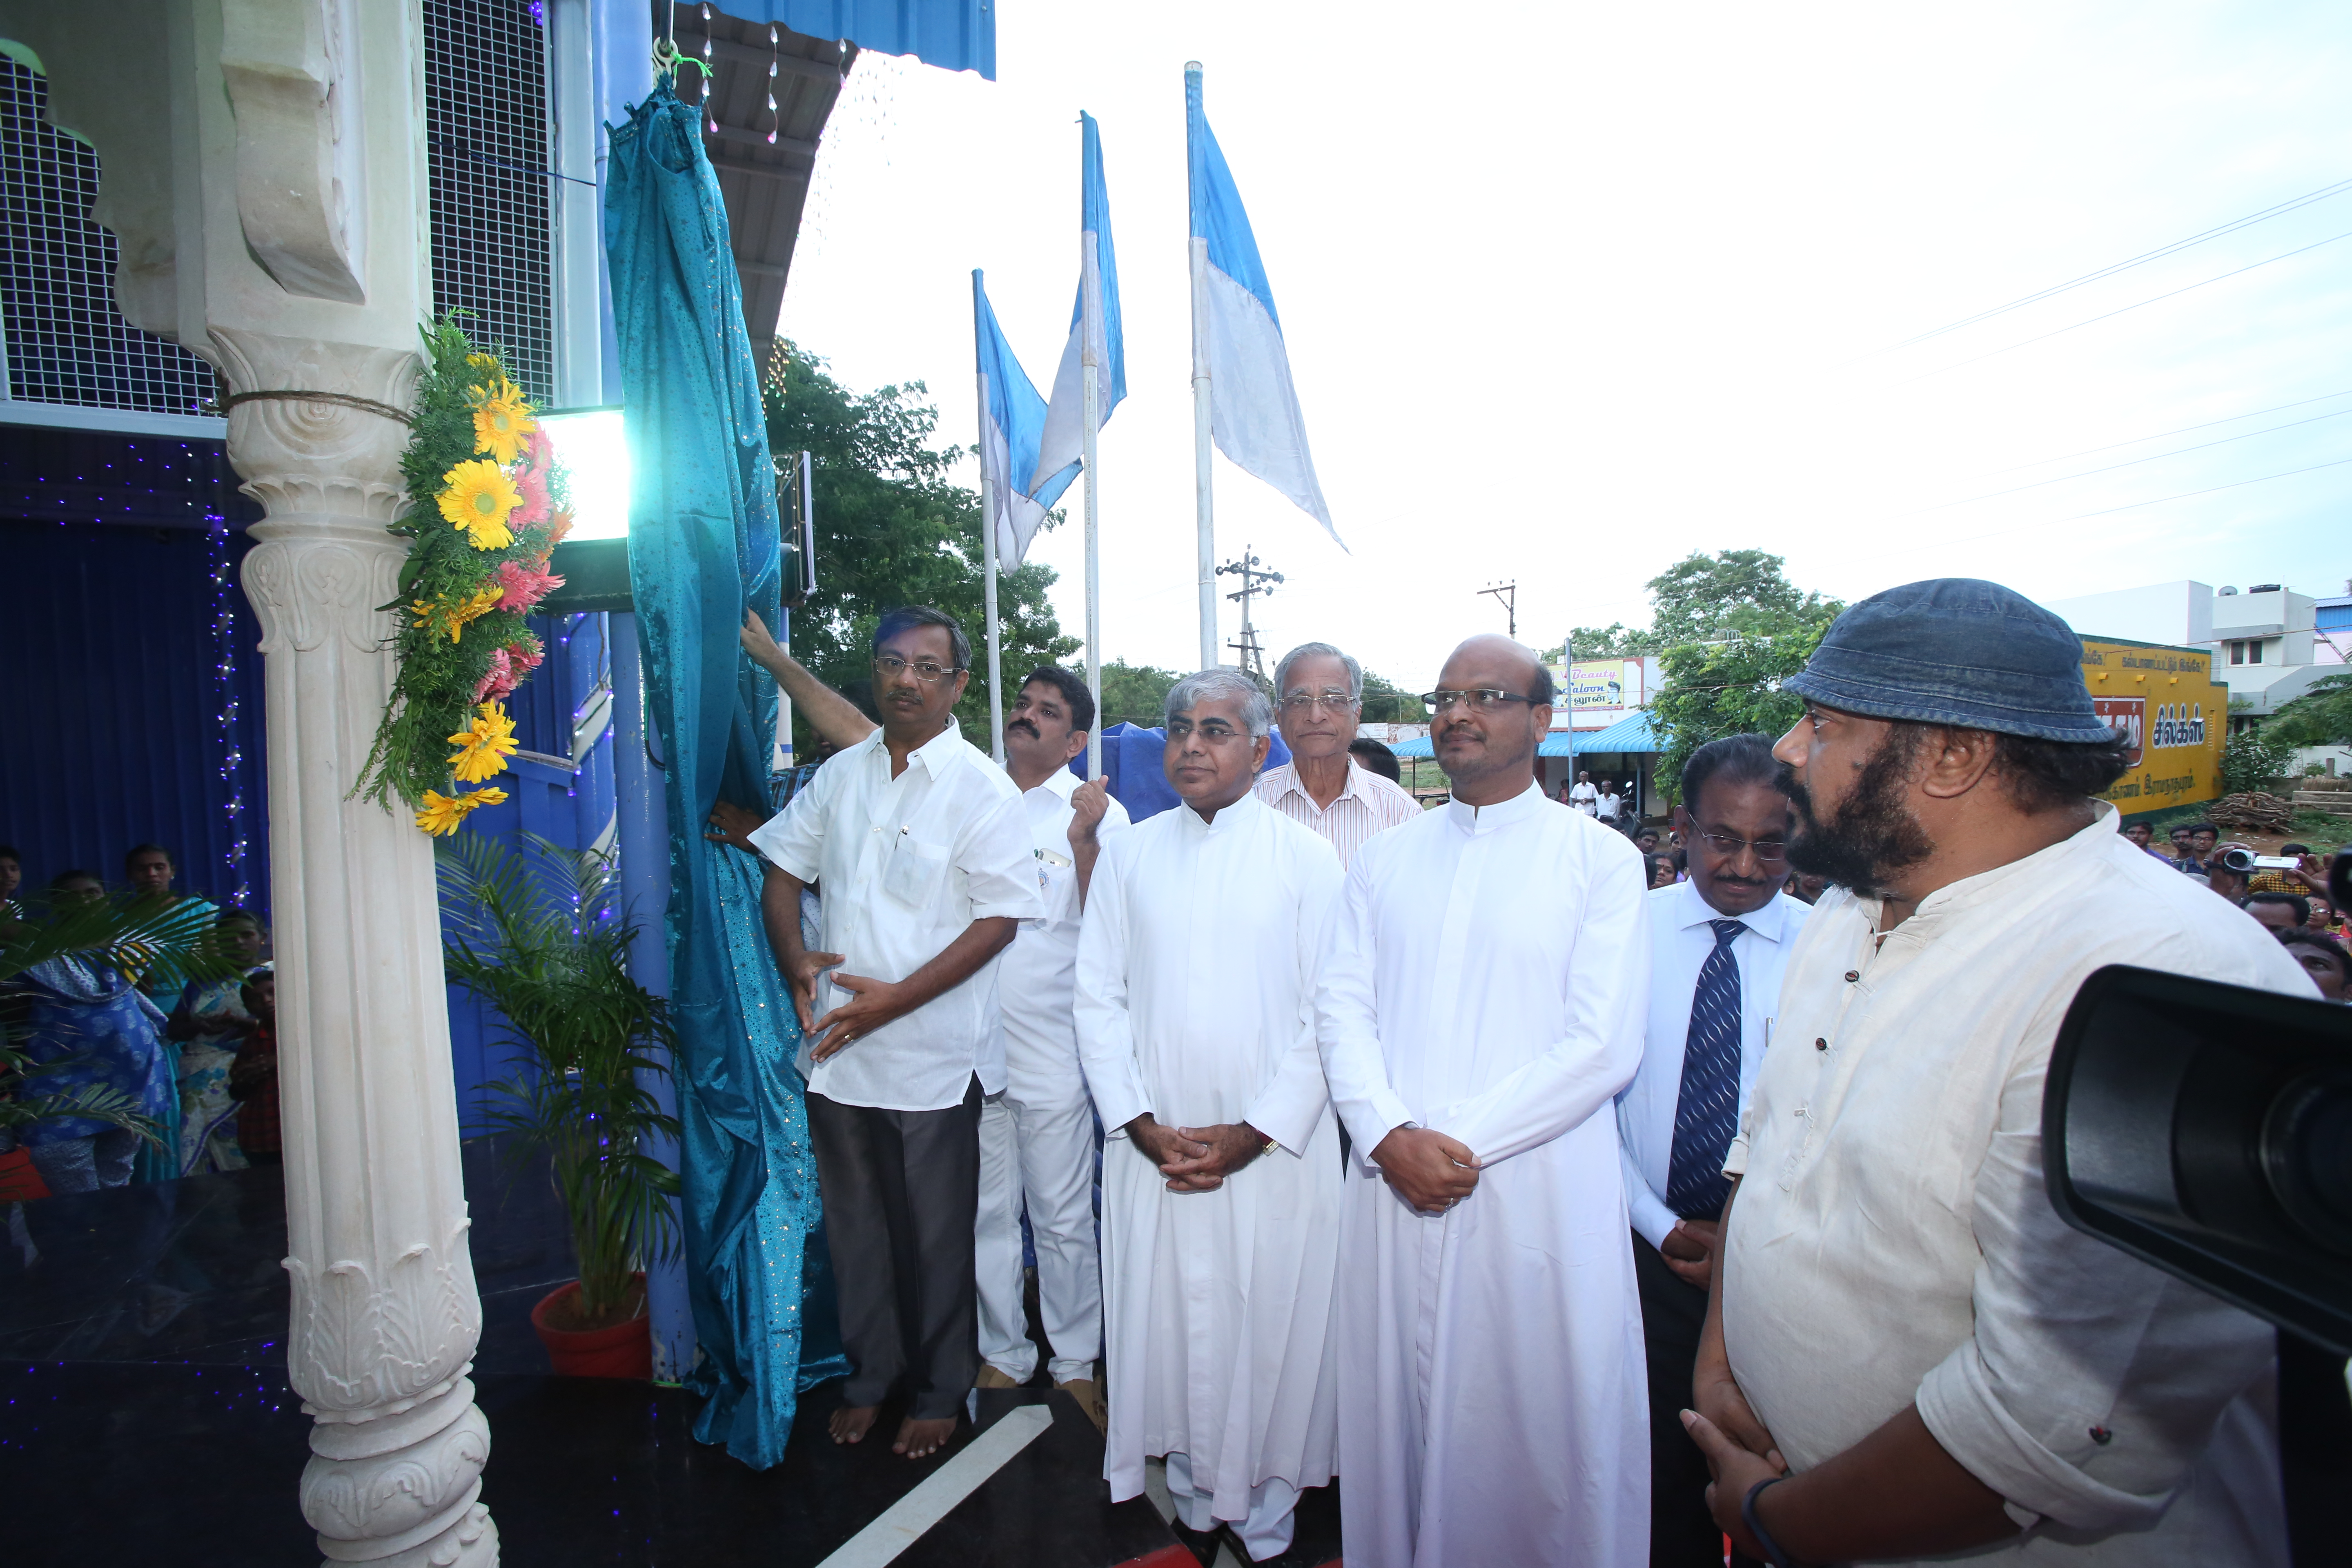 Thiru. Louis Adaikala Raj unveiled the Life Size statue of St. Mother Teresa